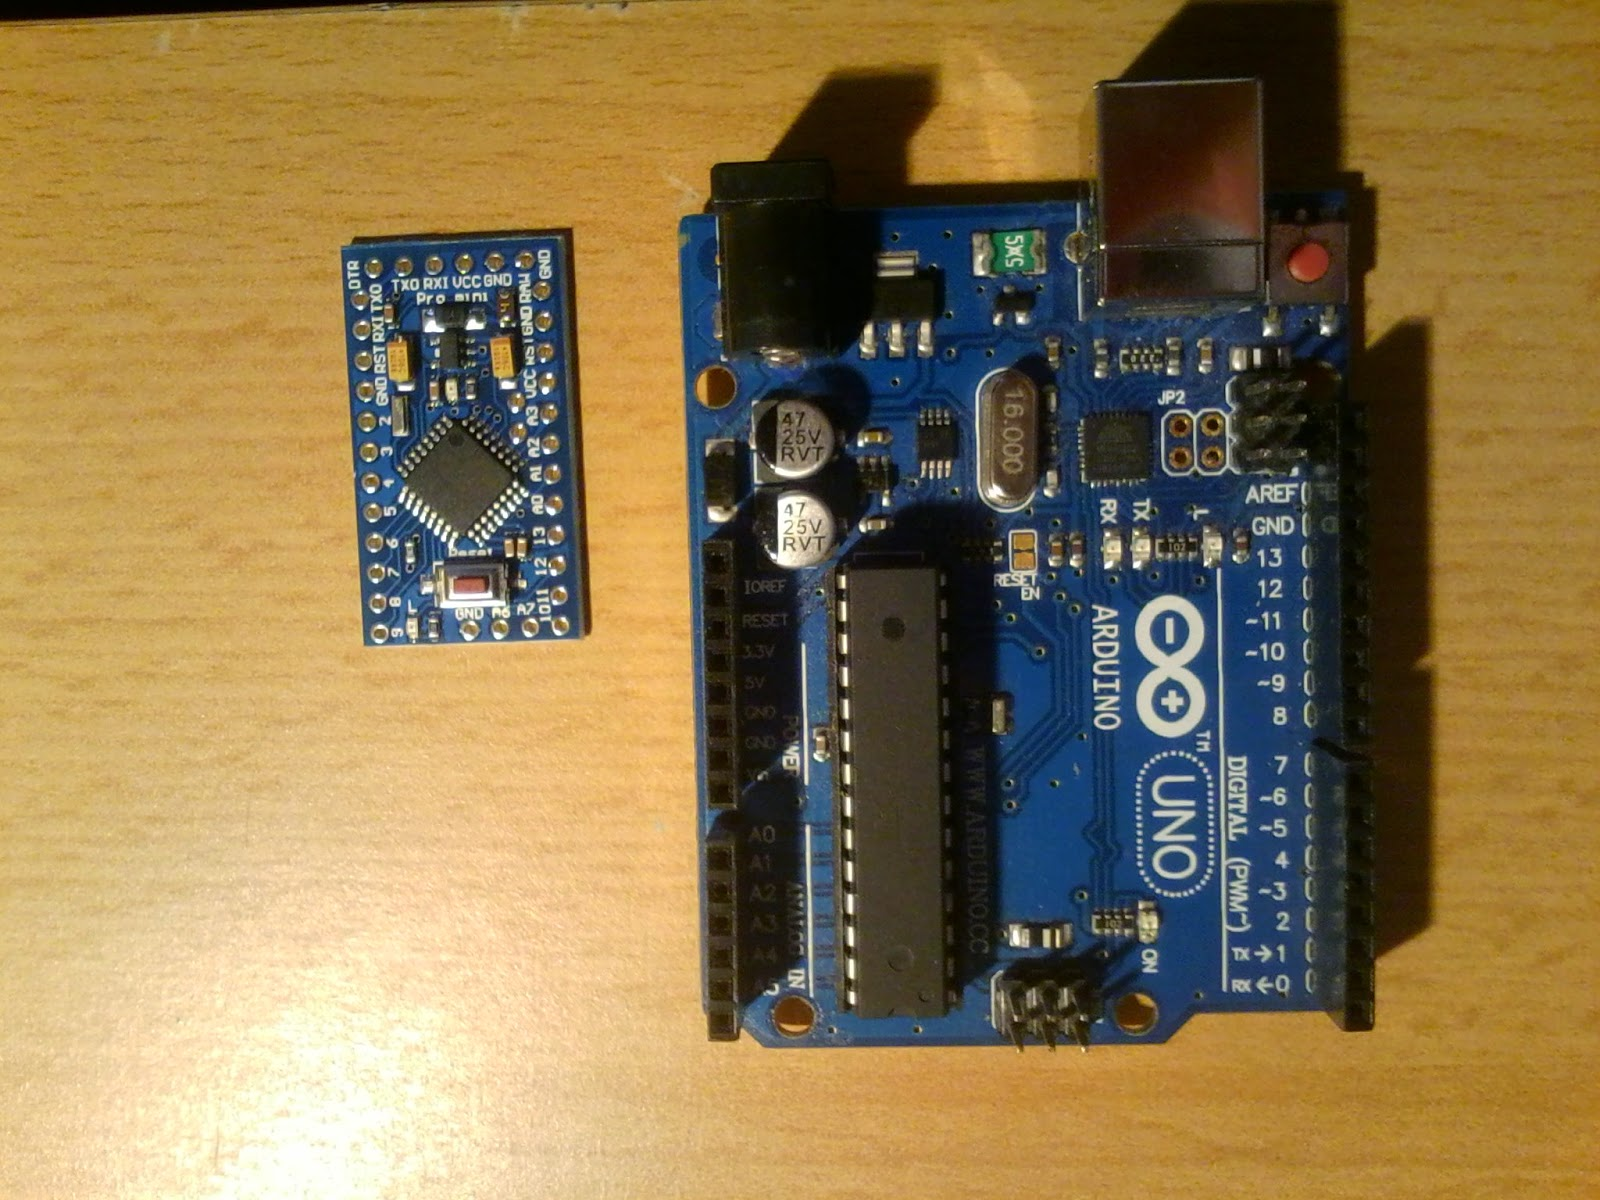 Connection esp8266 for flashing